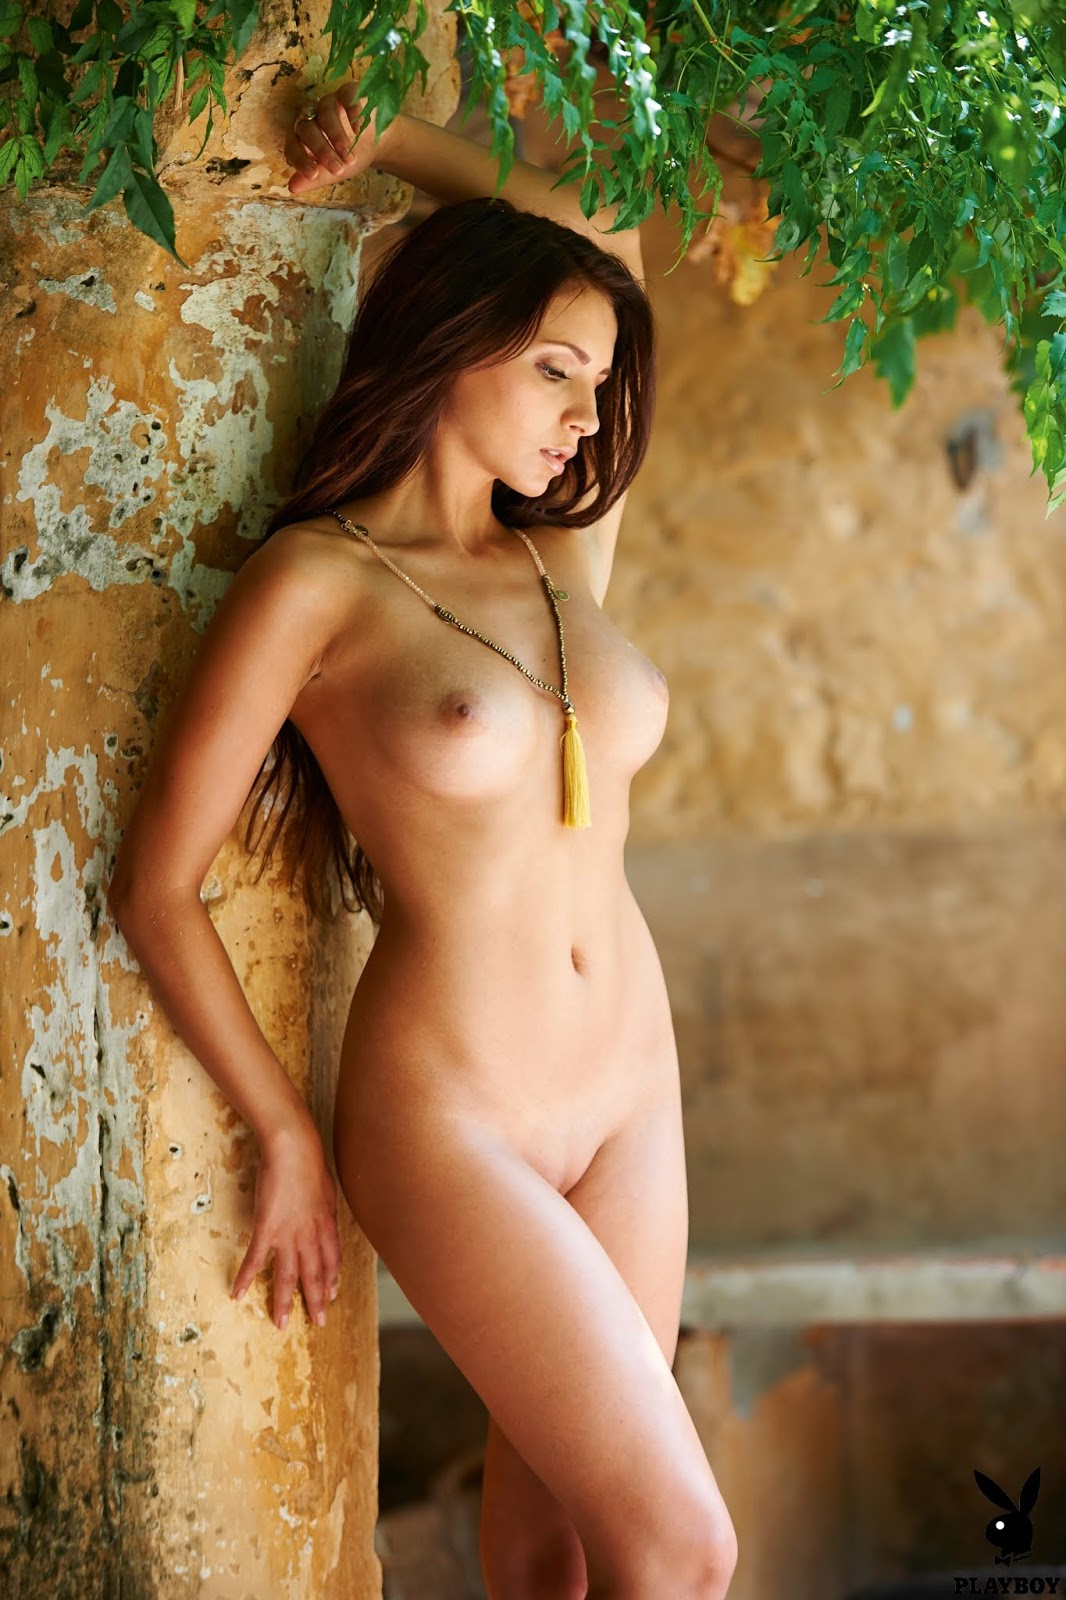 German nude female babes #14